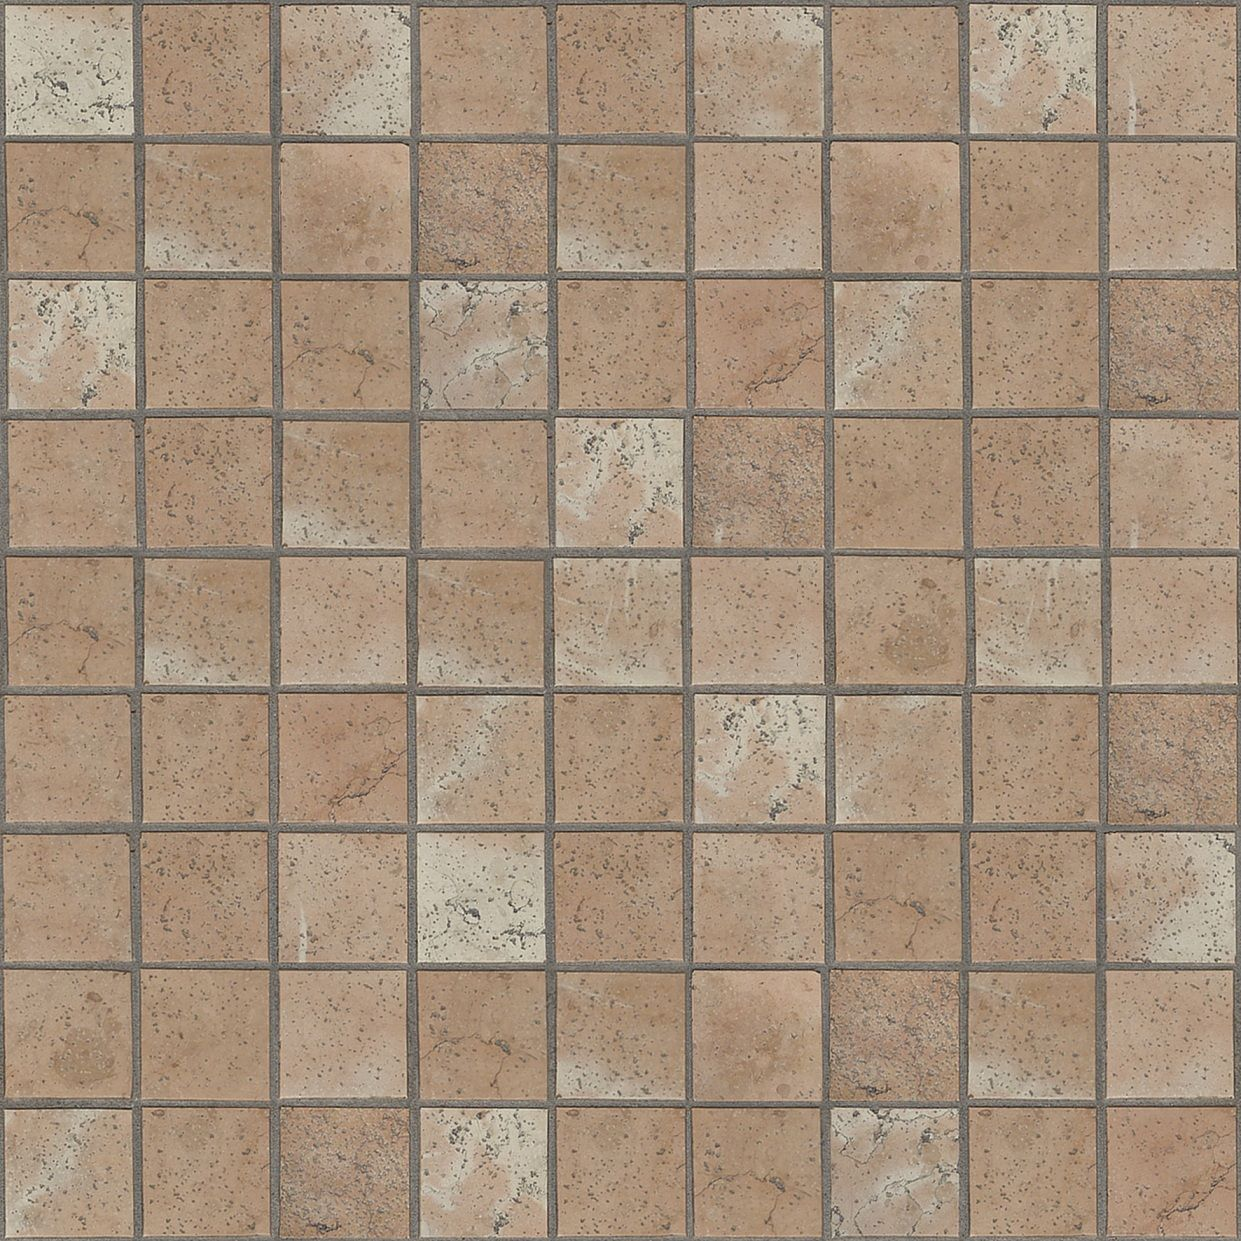 Bathroom Tiles Texture bathroom floor tile texture seamless | stuff to buy | pinterest